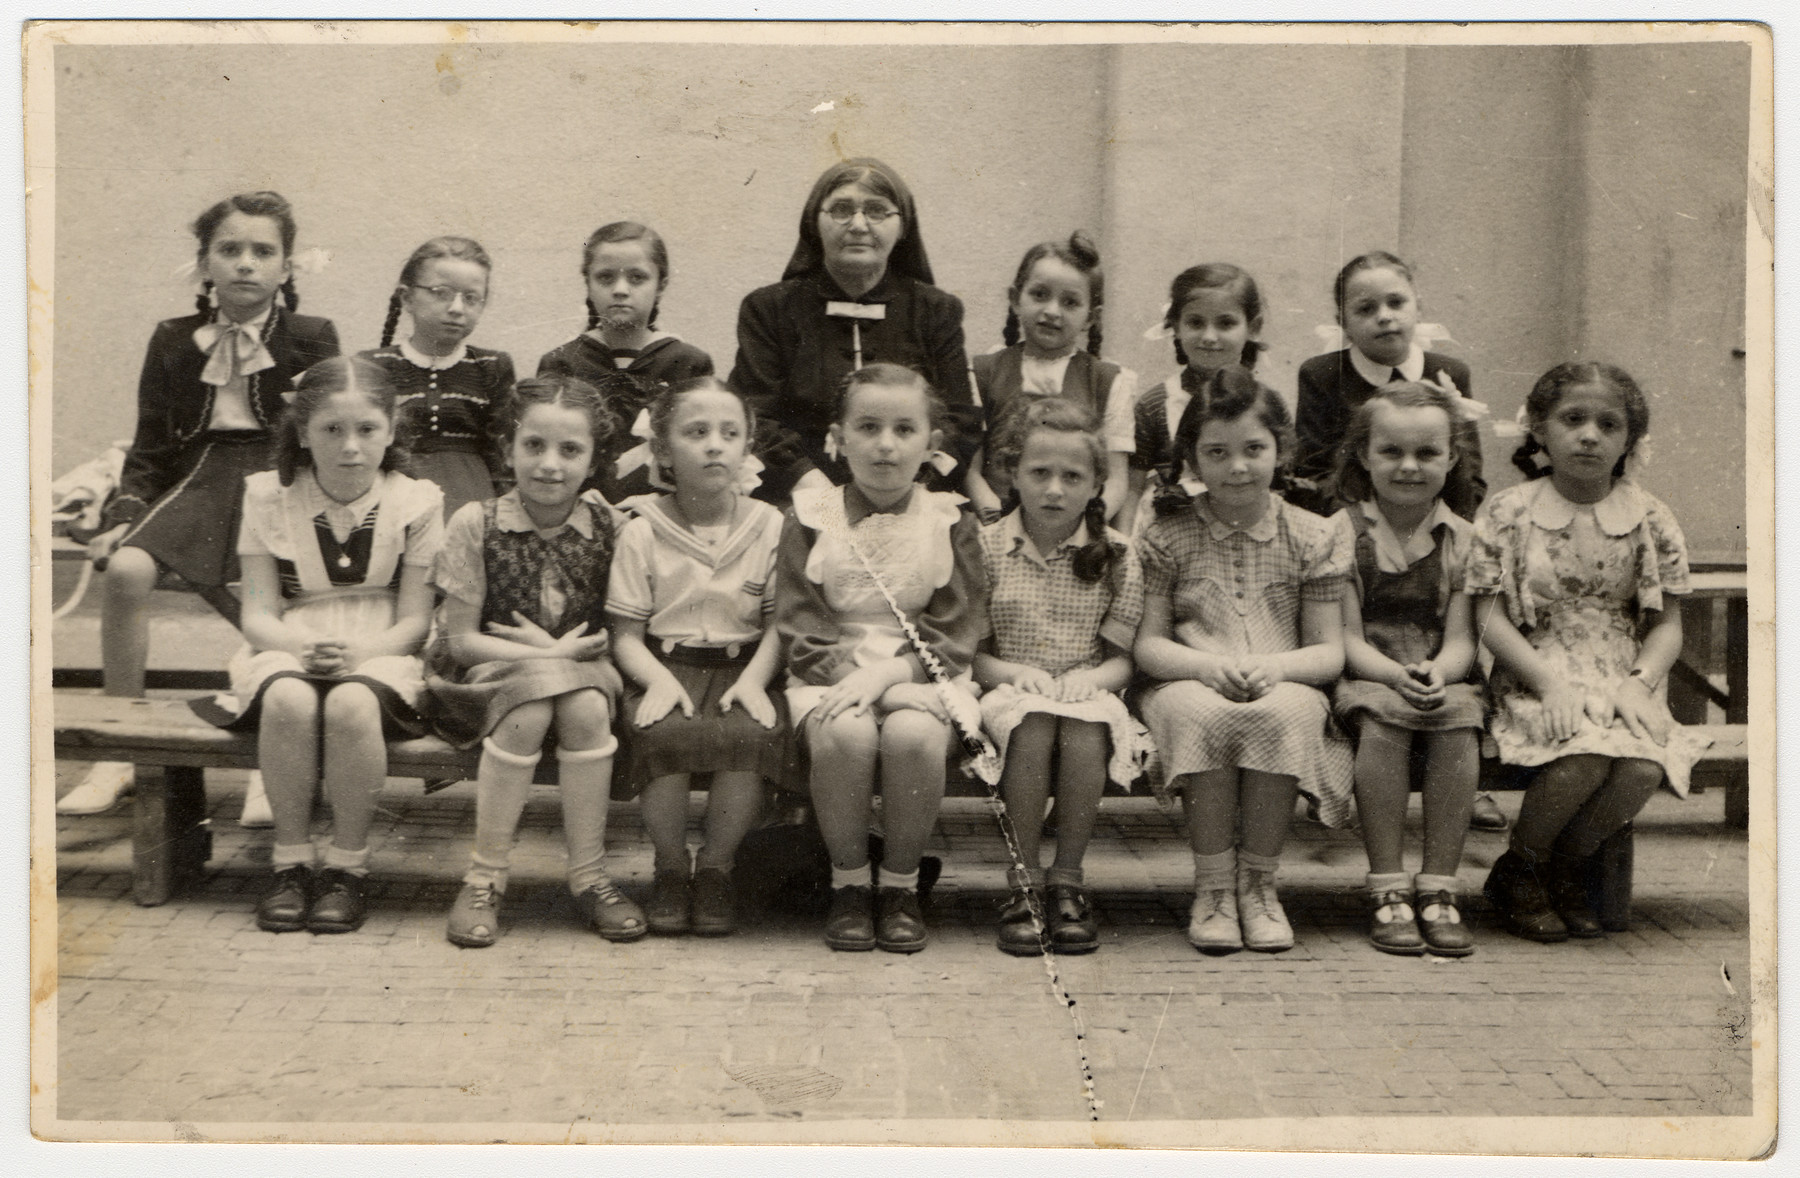 Group portrait of girls in an Orthodox Jewish elementary school in Budapest.  Among those pictured is Zsuzsa Rubin in the back row to the right of the teacher.